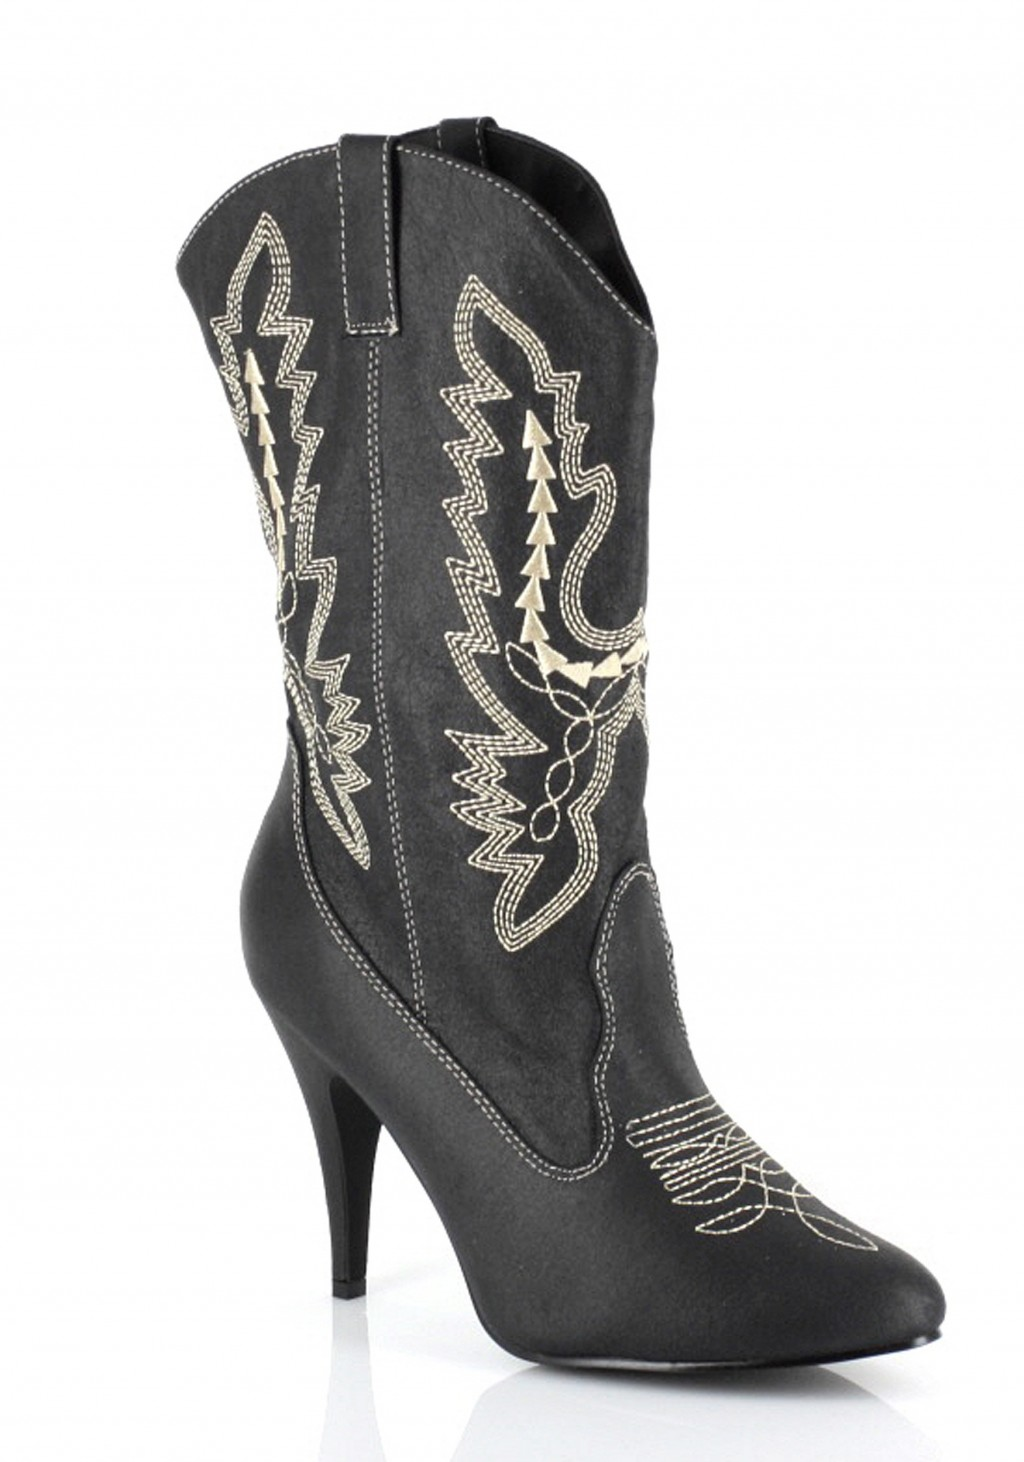 Awesome Cowgirl Bootsproduct Image in Shoes